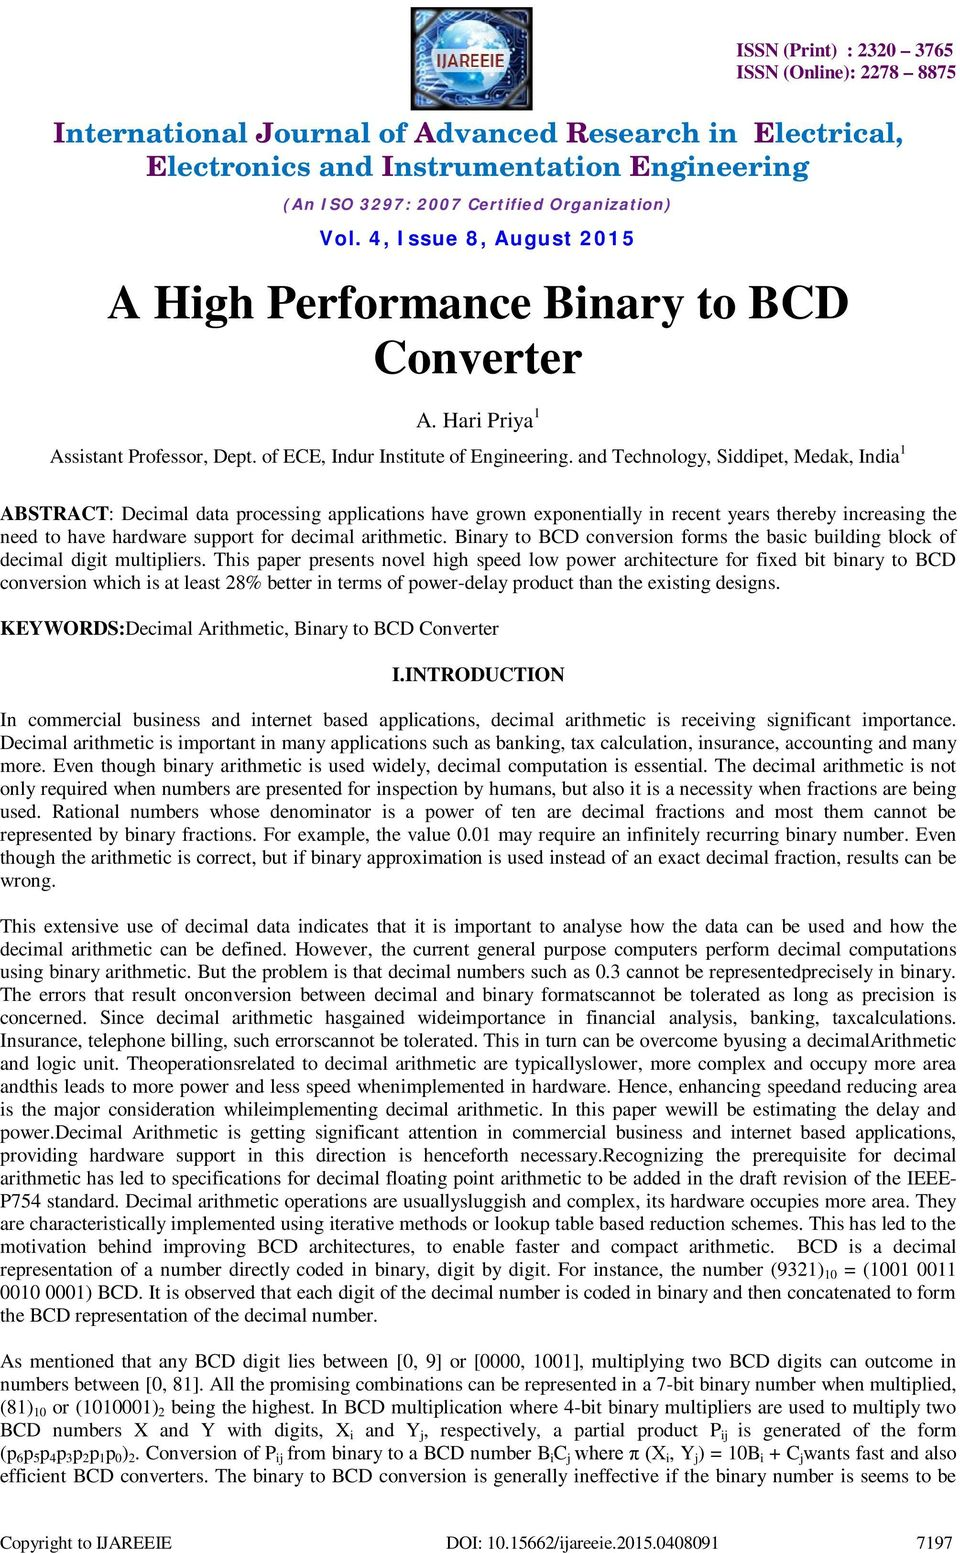 A High Performance Binary to BCD Converter - PDF